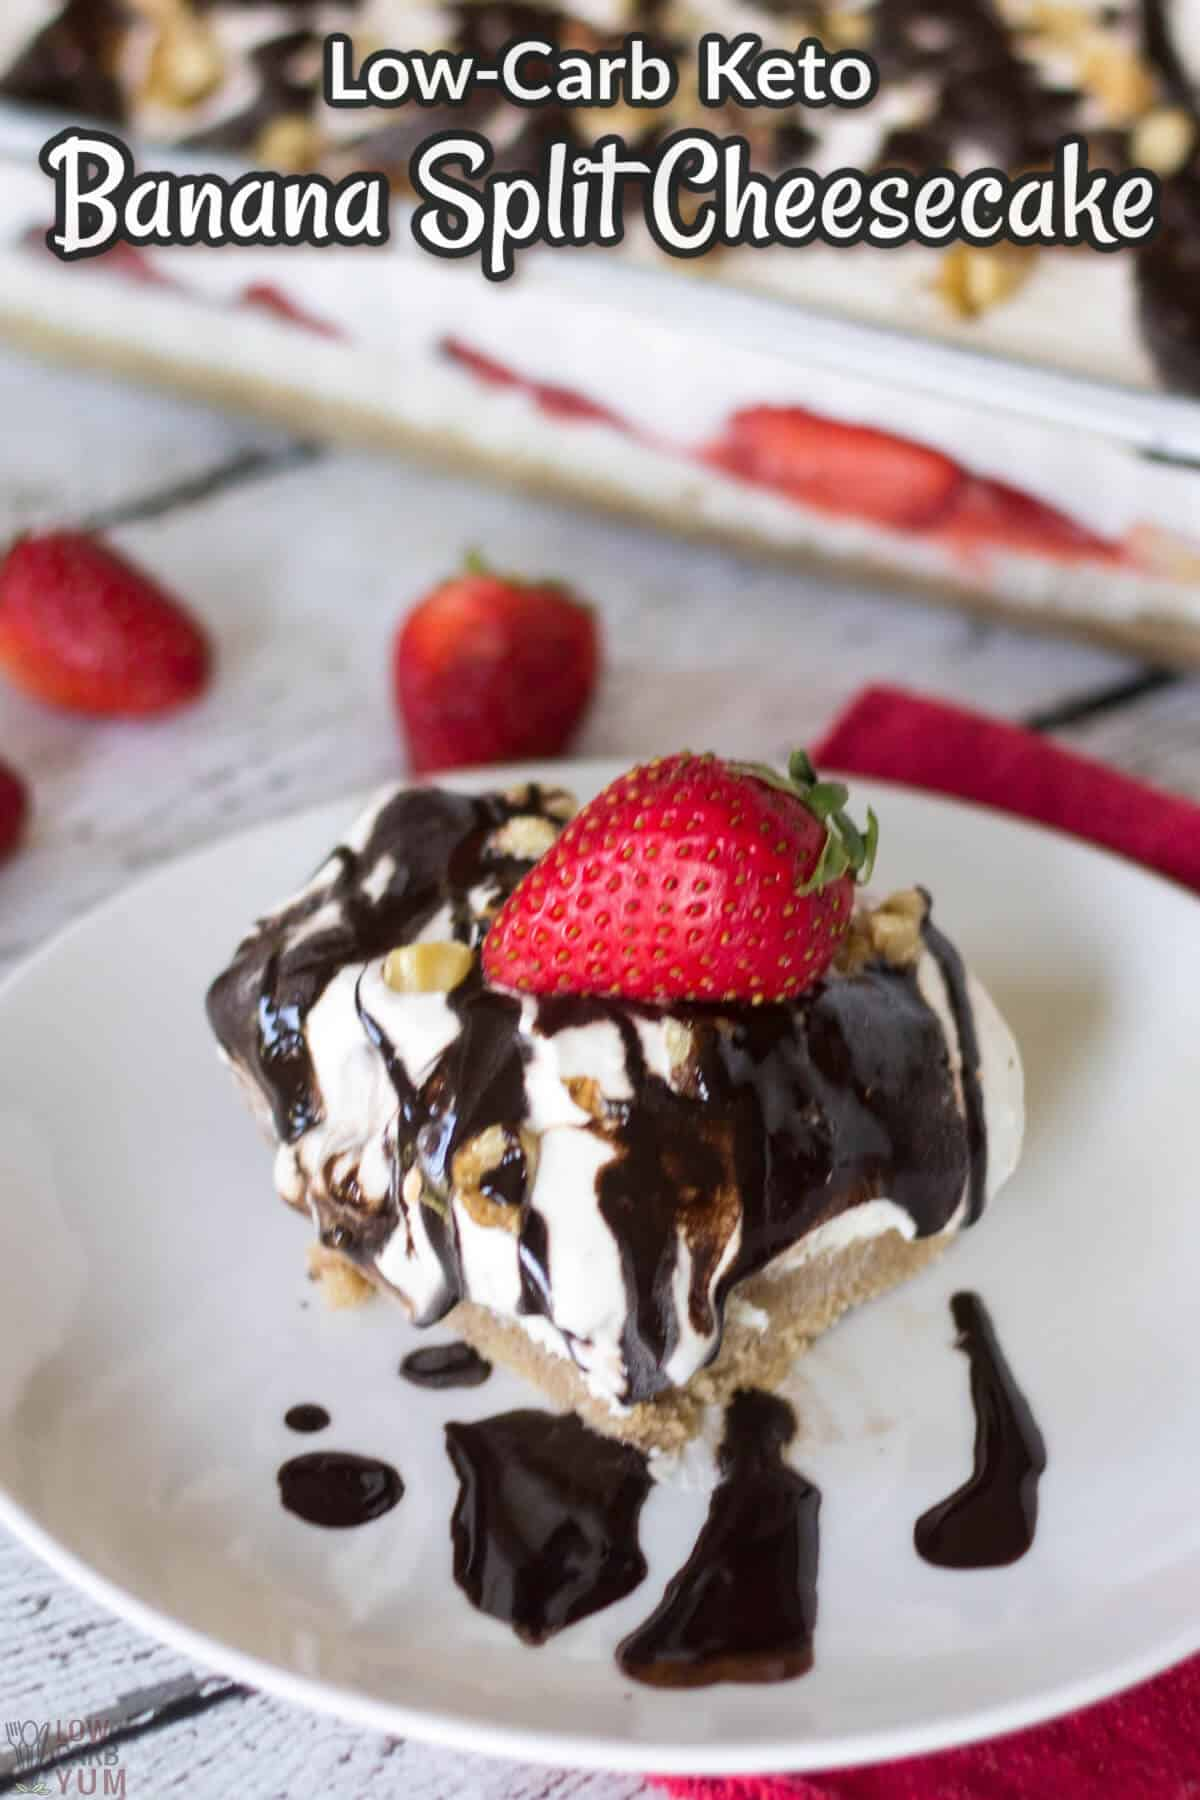 banana split cheesecake cover image